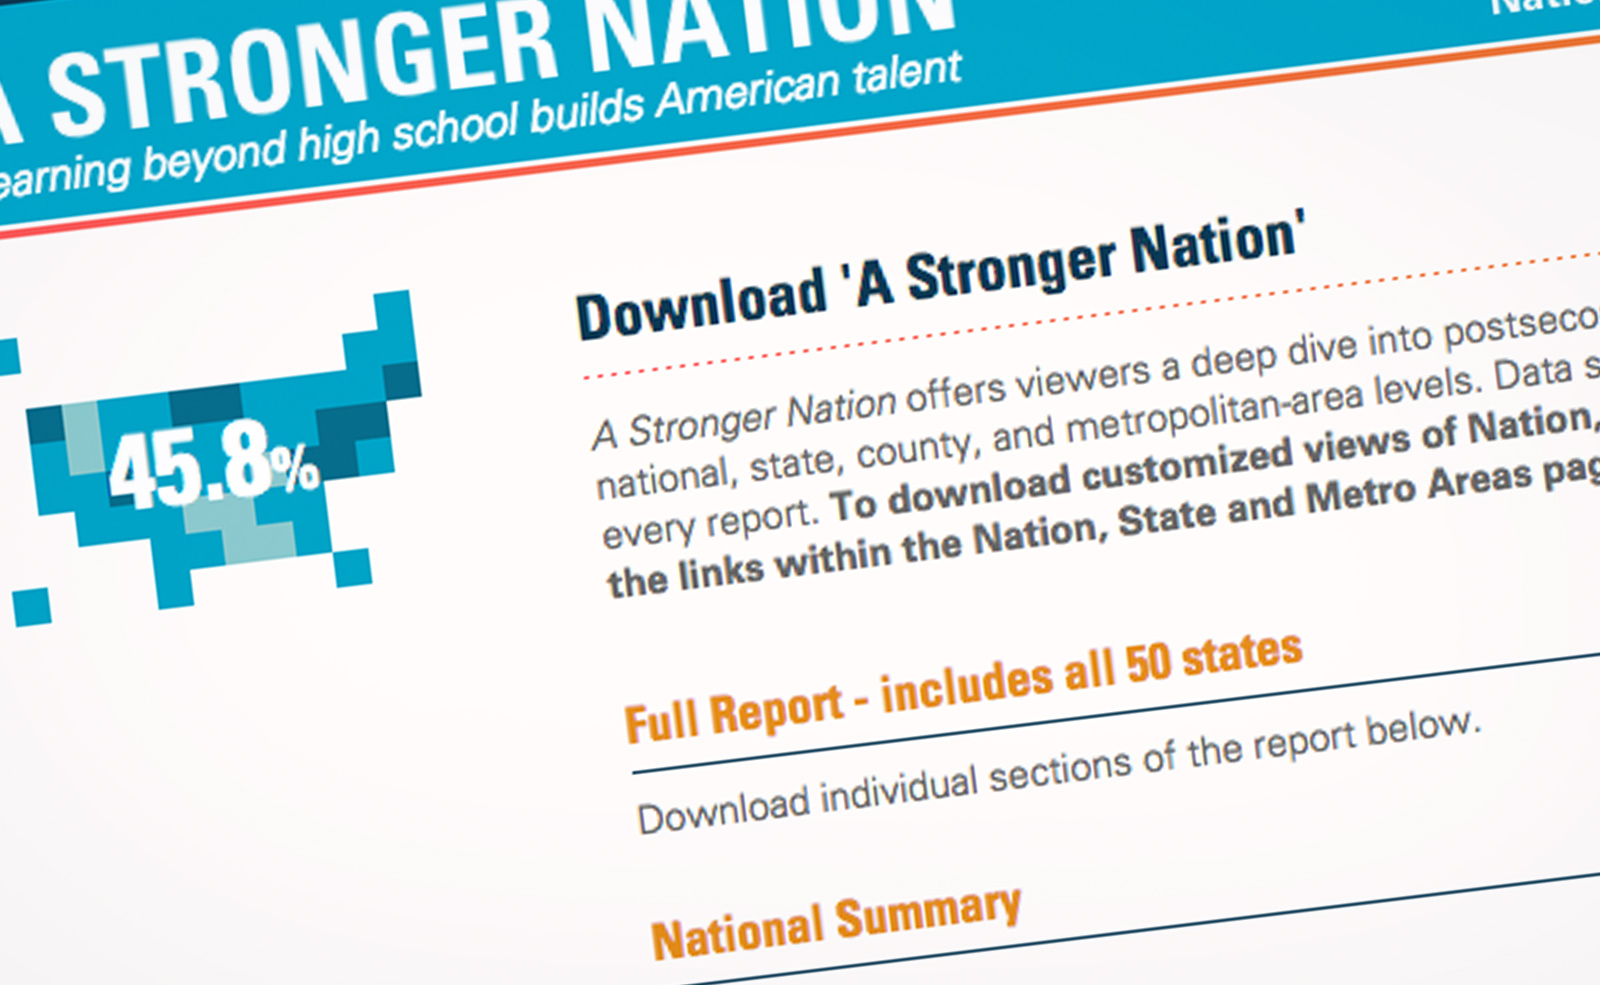 Stronger Nation Report